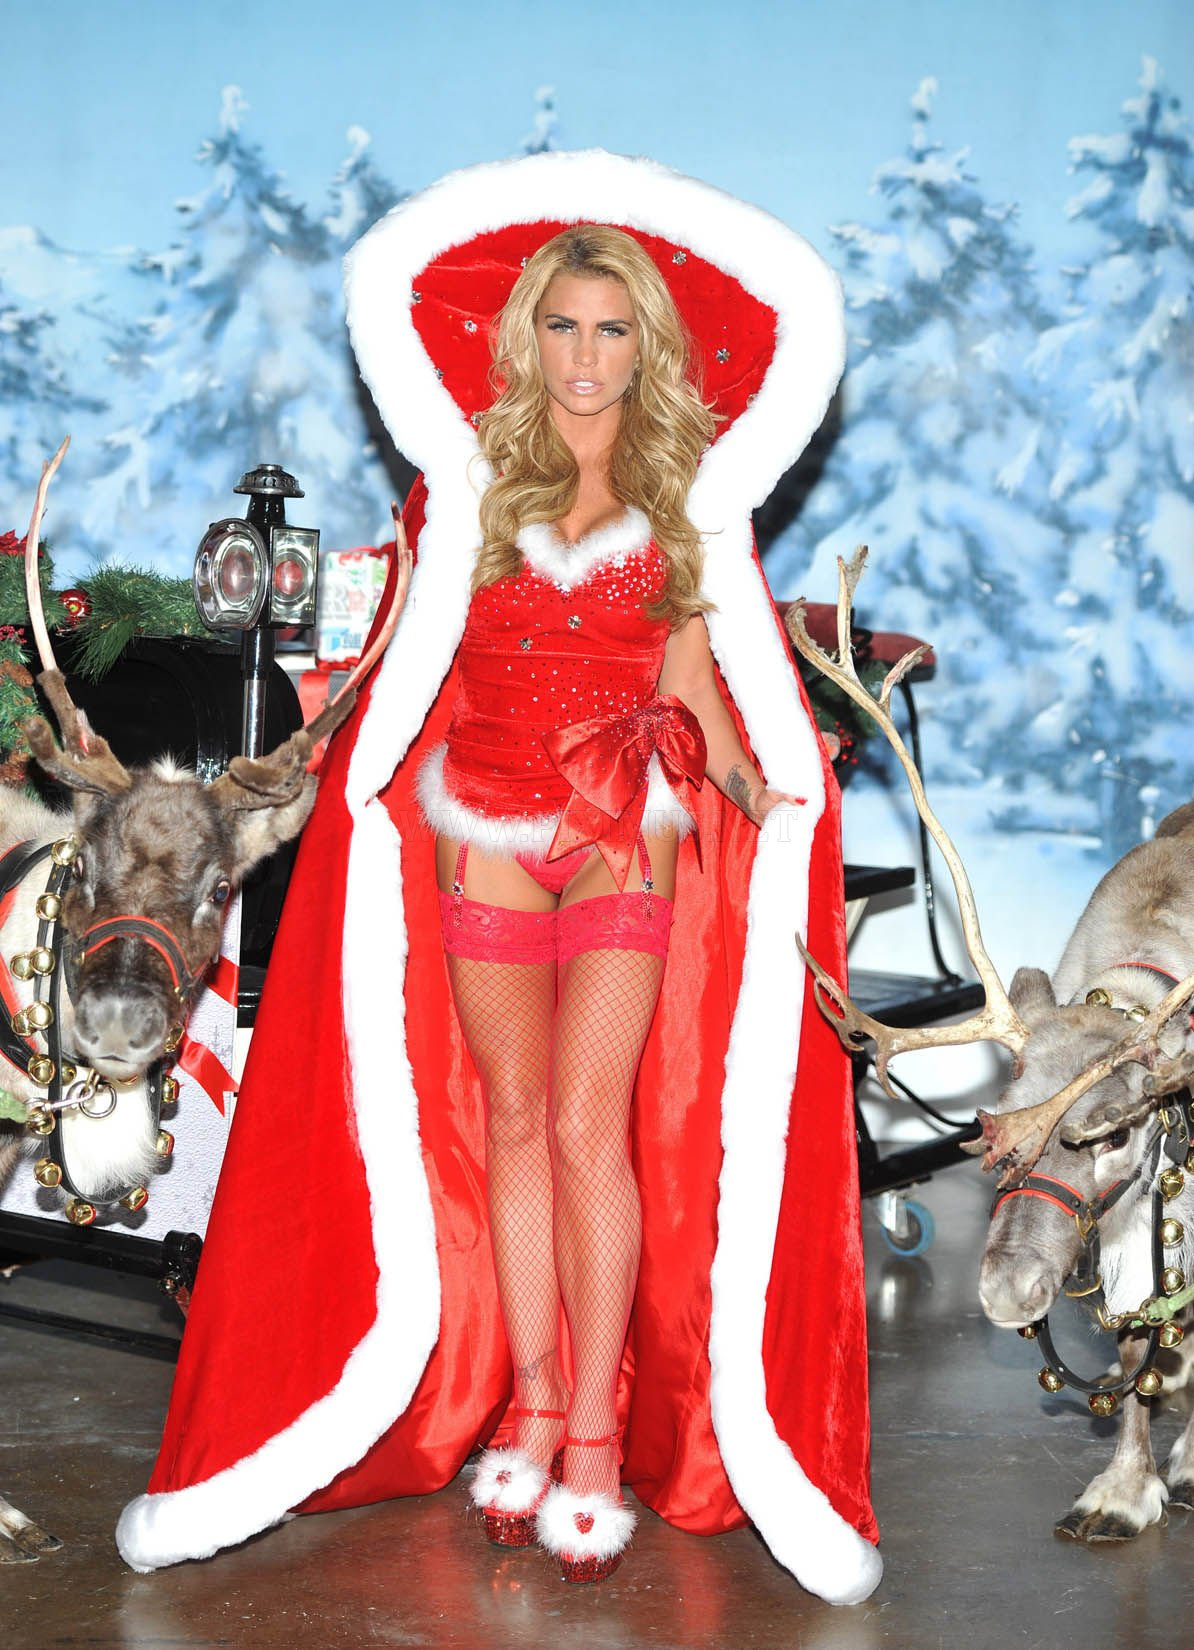 Katie Price in Christmas costume